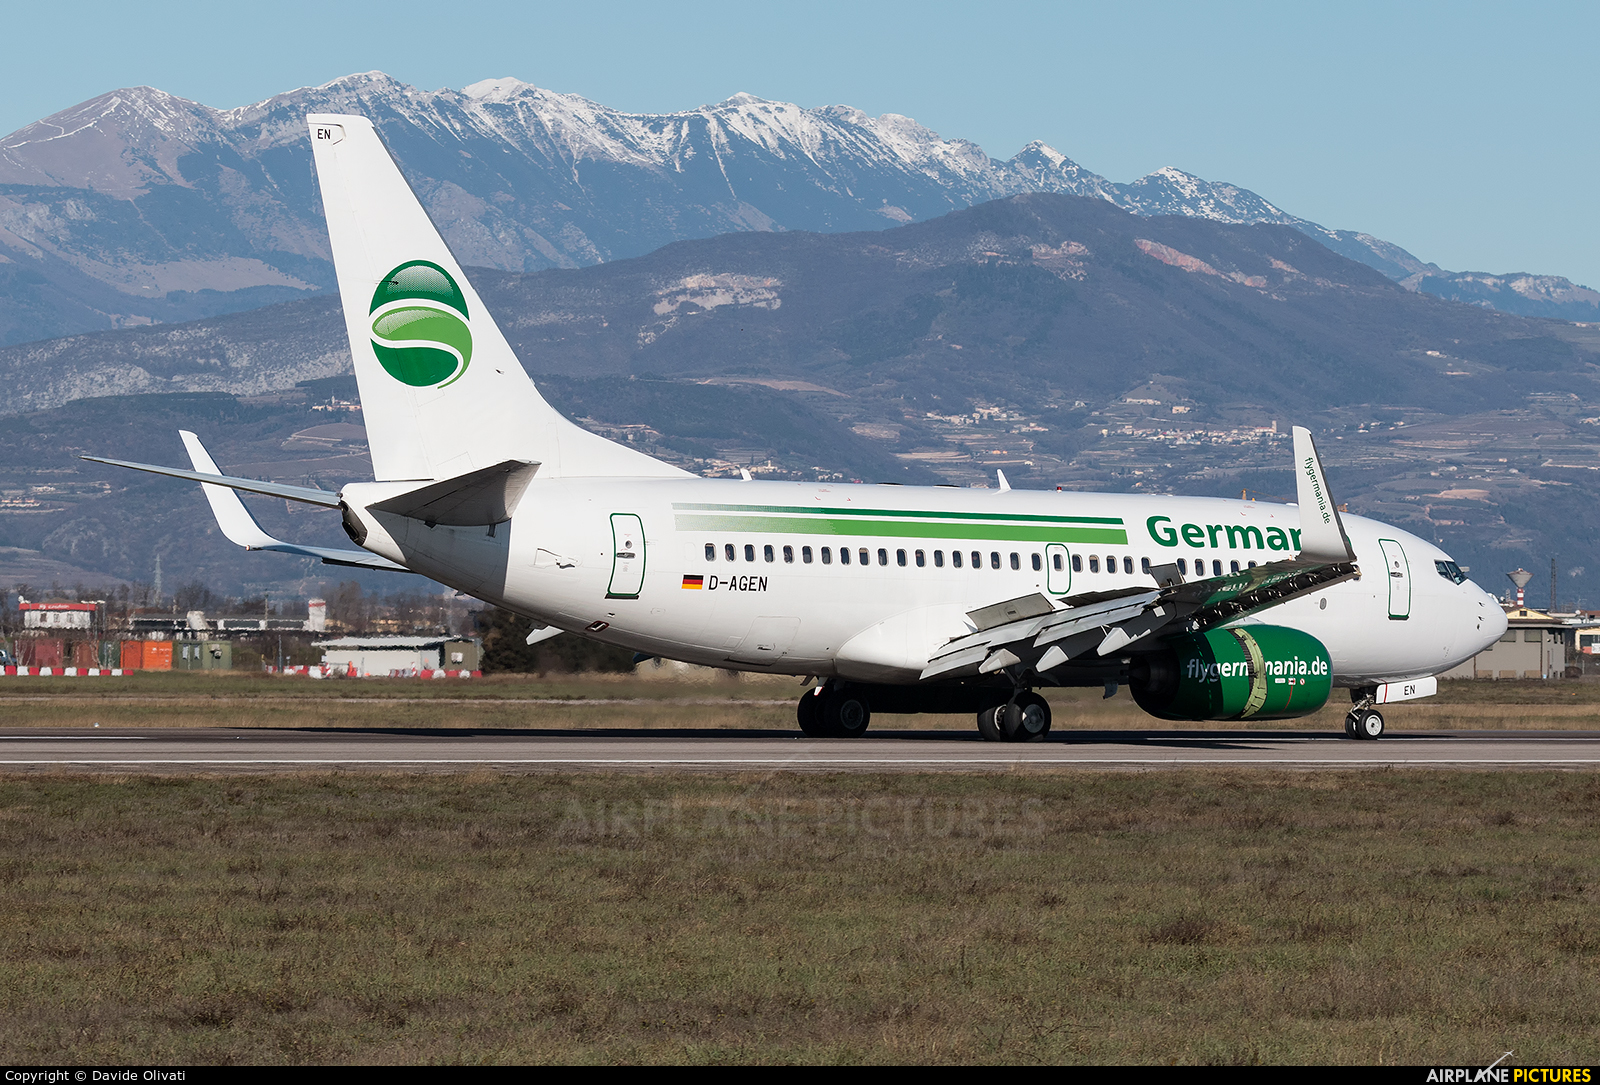 Germania D-AGEN aircraft at Verona - Villafranca